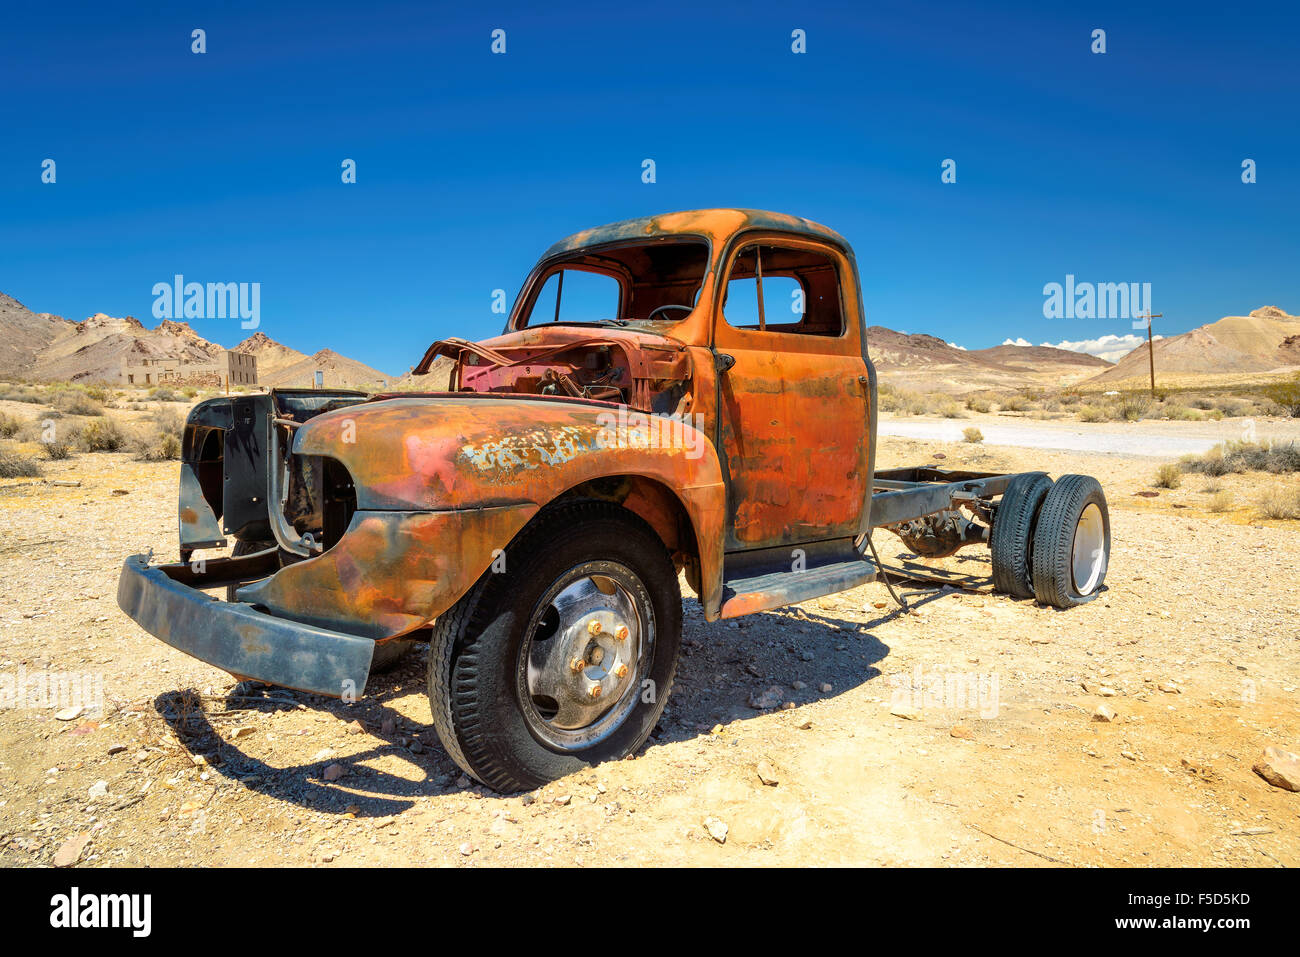 Old farm truck left in ghost town in the desert - Stock Image